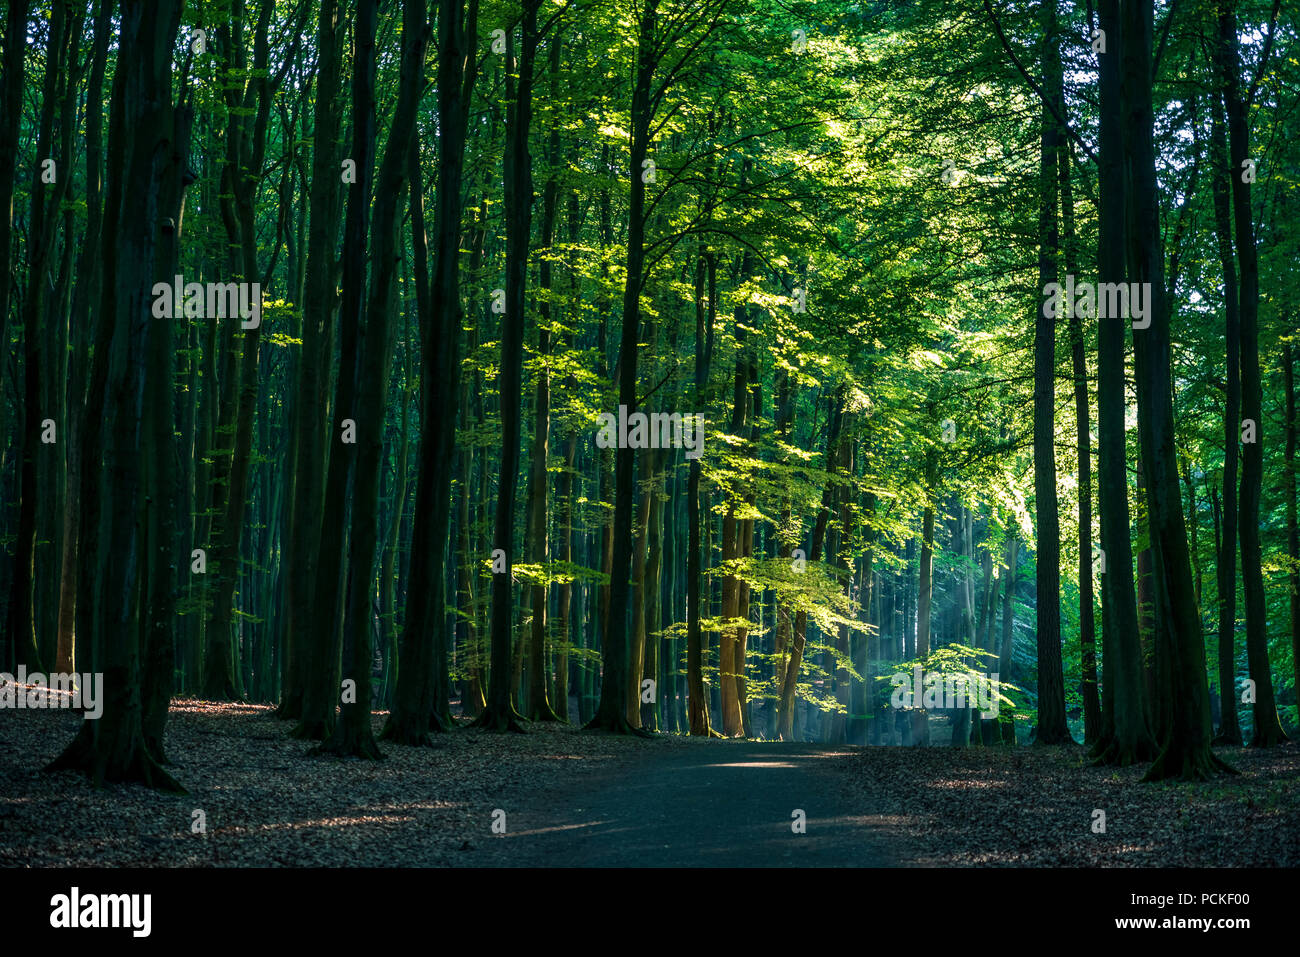 Beautiful and thick beech forest in summer. - Stock Image